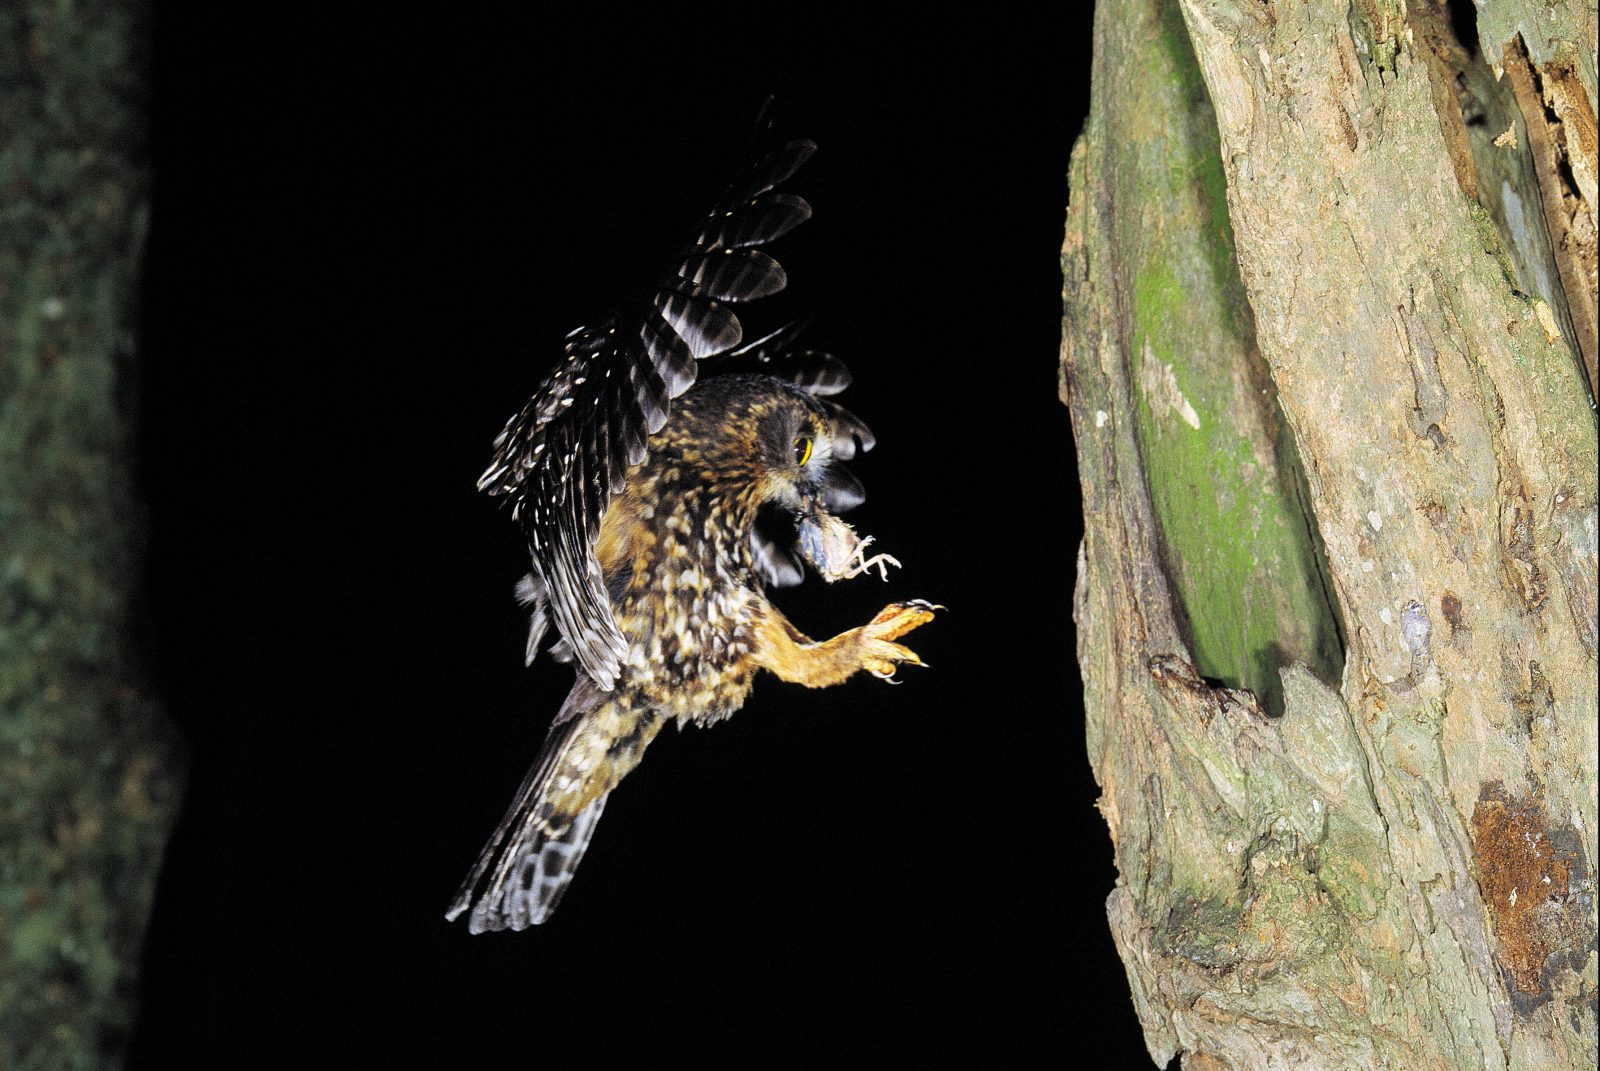 Moreporks seize only a small number of adult fantails but take many nestlings. Compared with the carnage wrought by ship rats, their predations are modest. Like moreporks, rats hunt by night, a time when females are often nest-bound, incubating eggs or chicks, and therefore highly vulnerable.